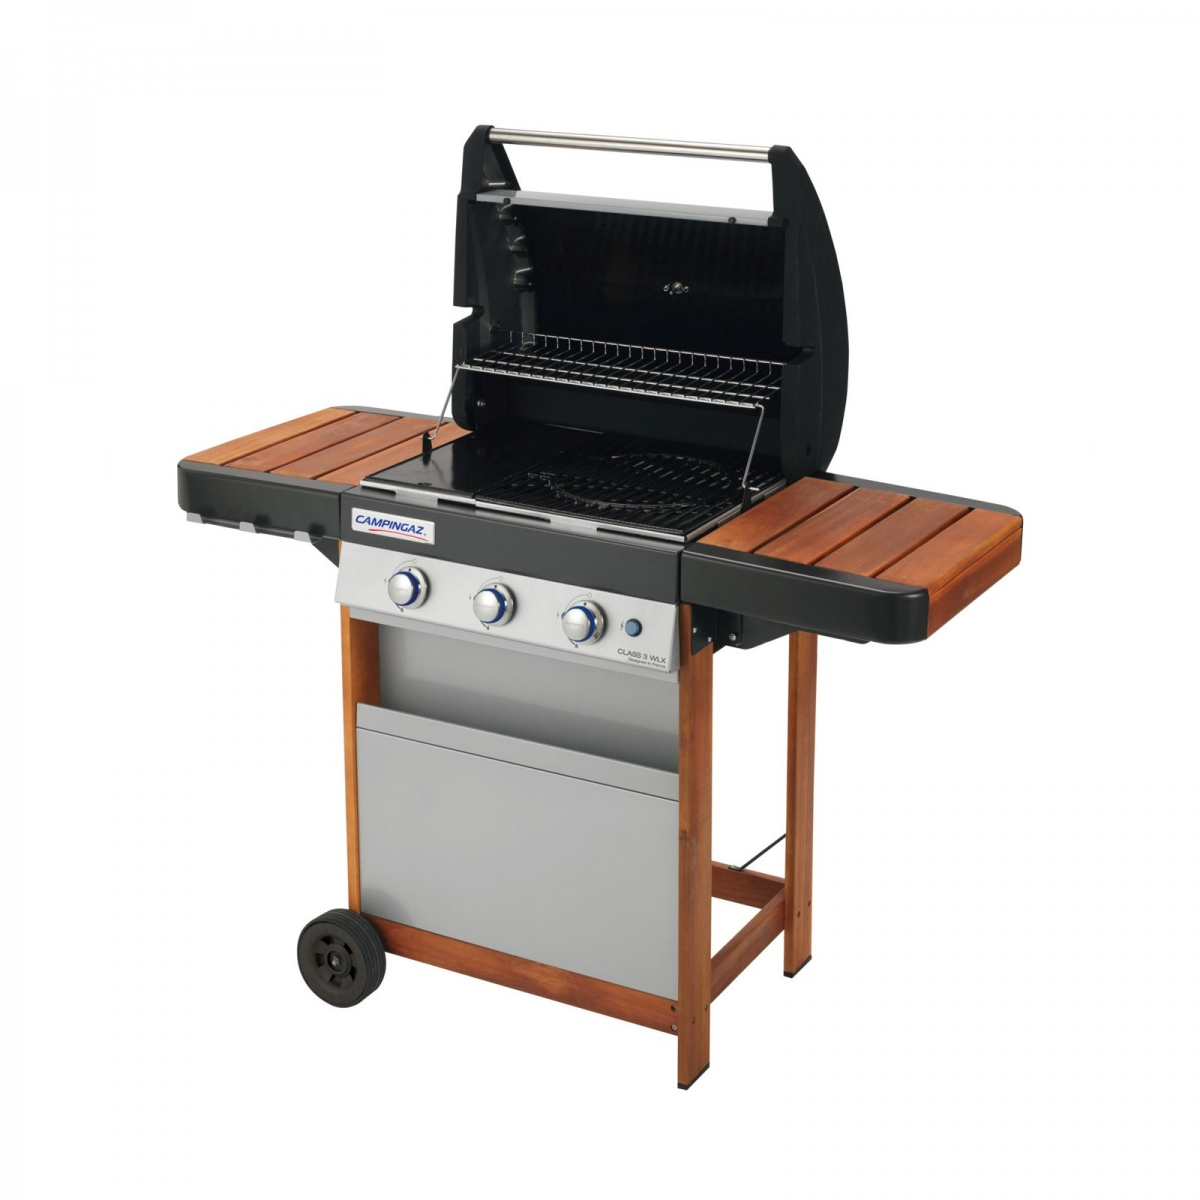 campingaz barbecue a gas 3 series woody l barbecue a gas. Black Bedroom Furniture Sets. Home Design Ideas